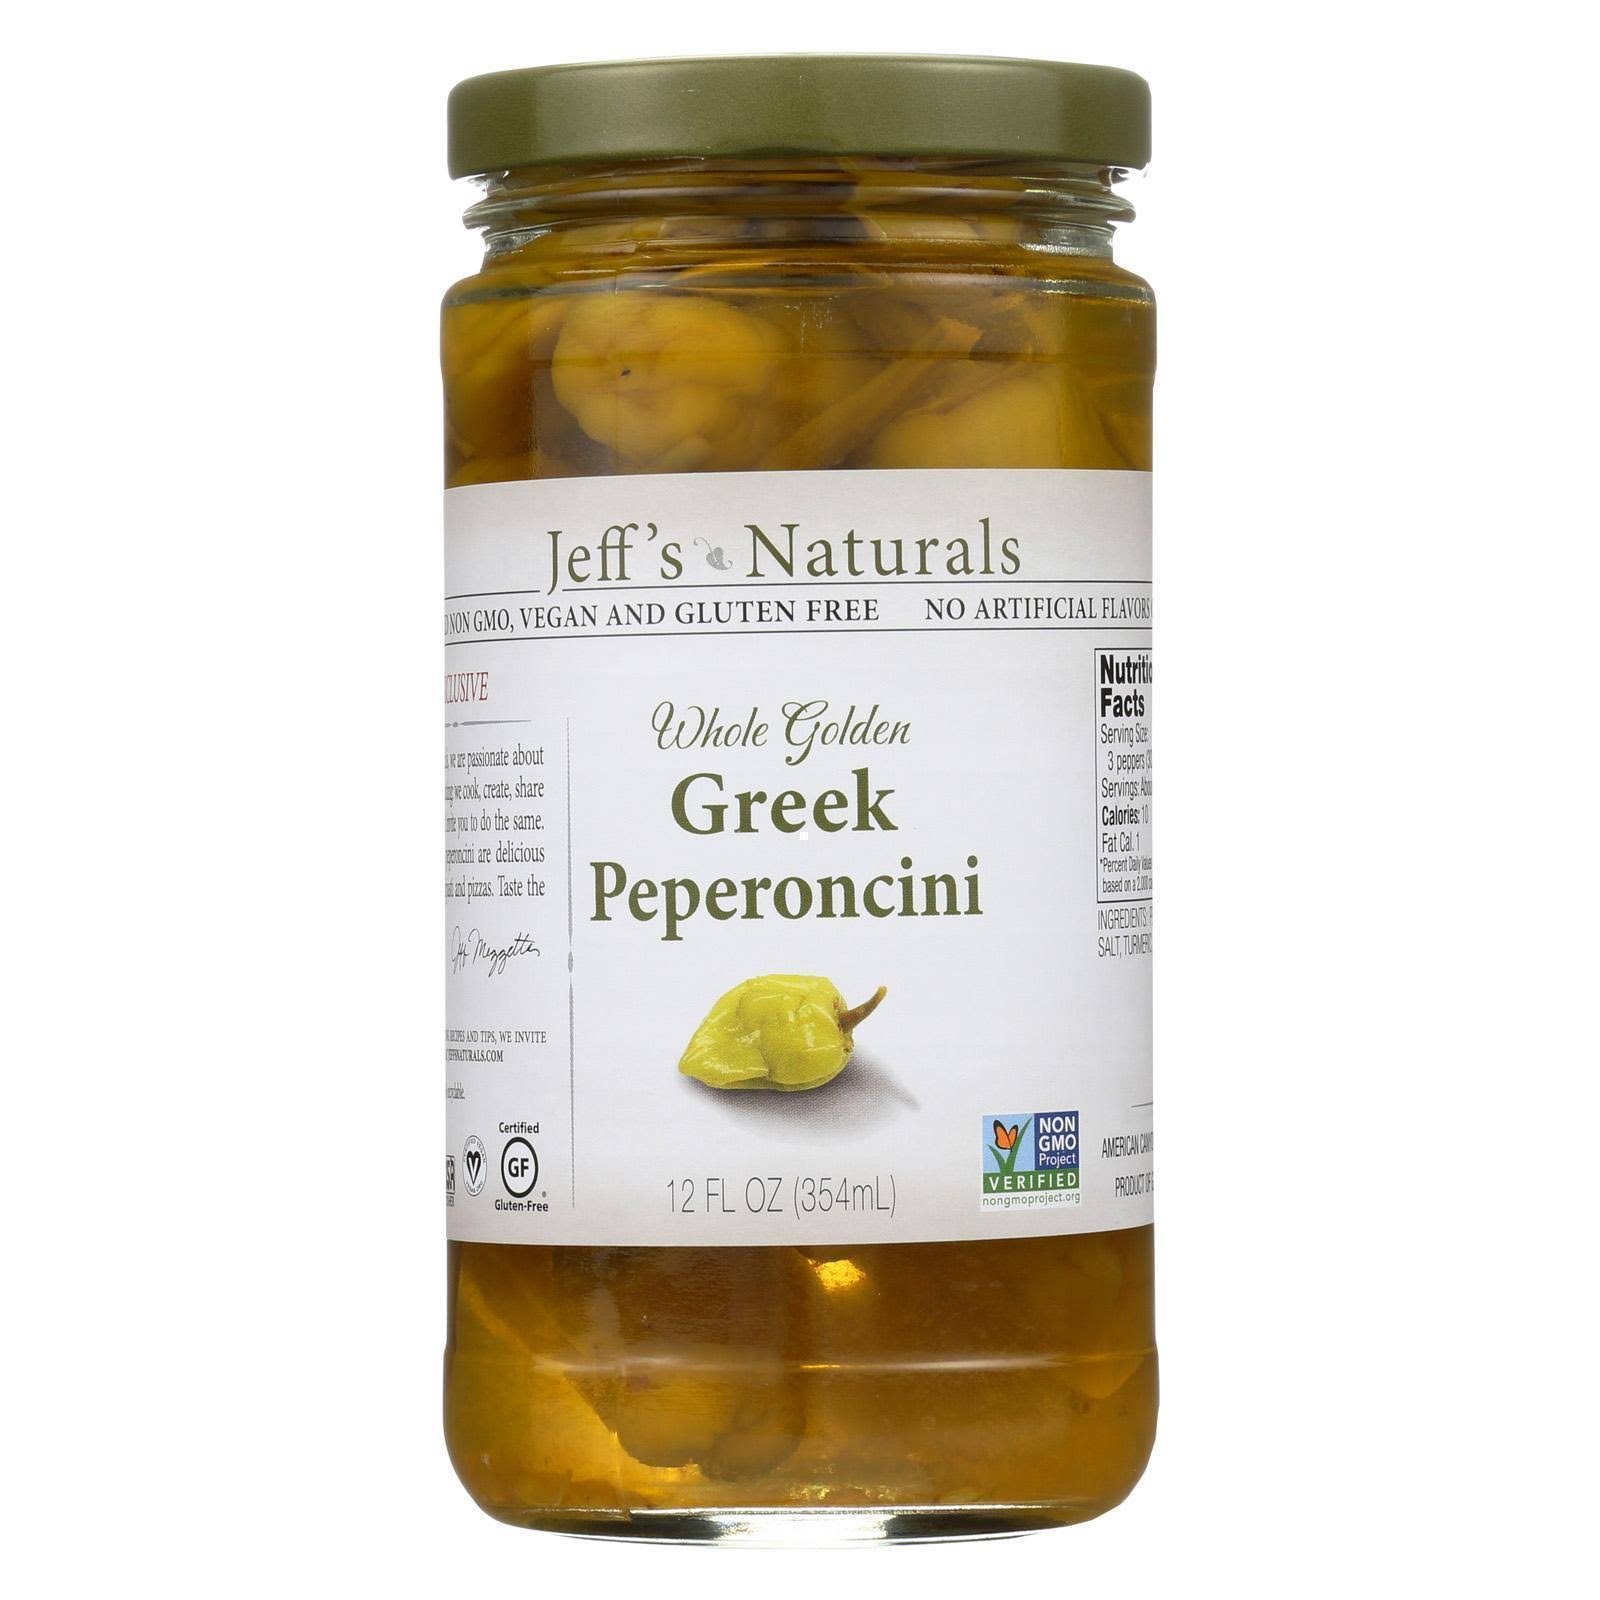 Jeffs Naturals Pepperoncini, Whole Golden Greek - 12 fl oz